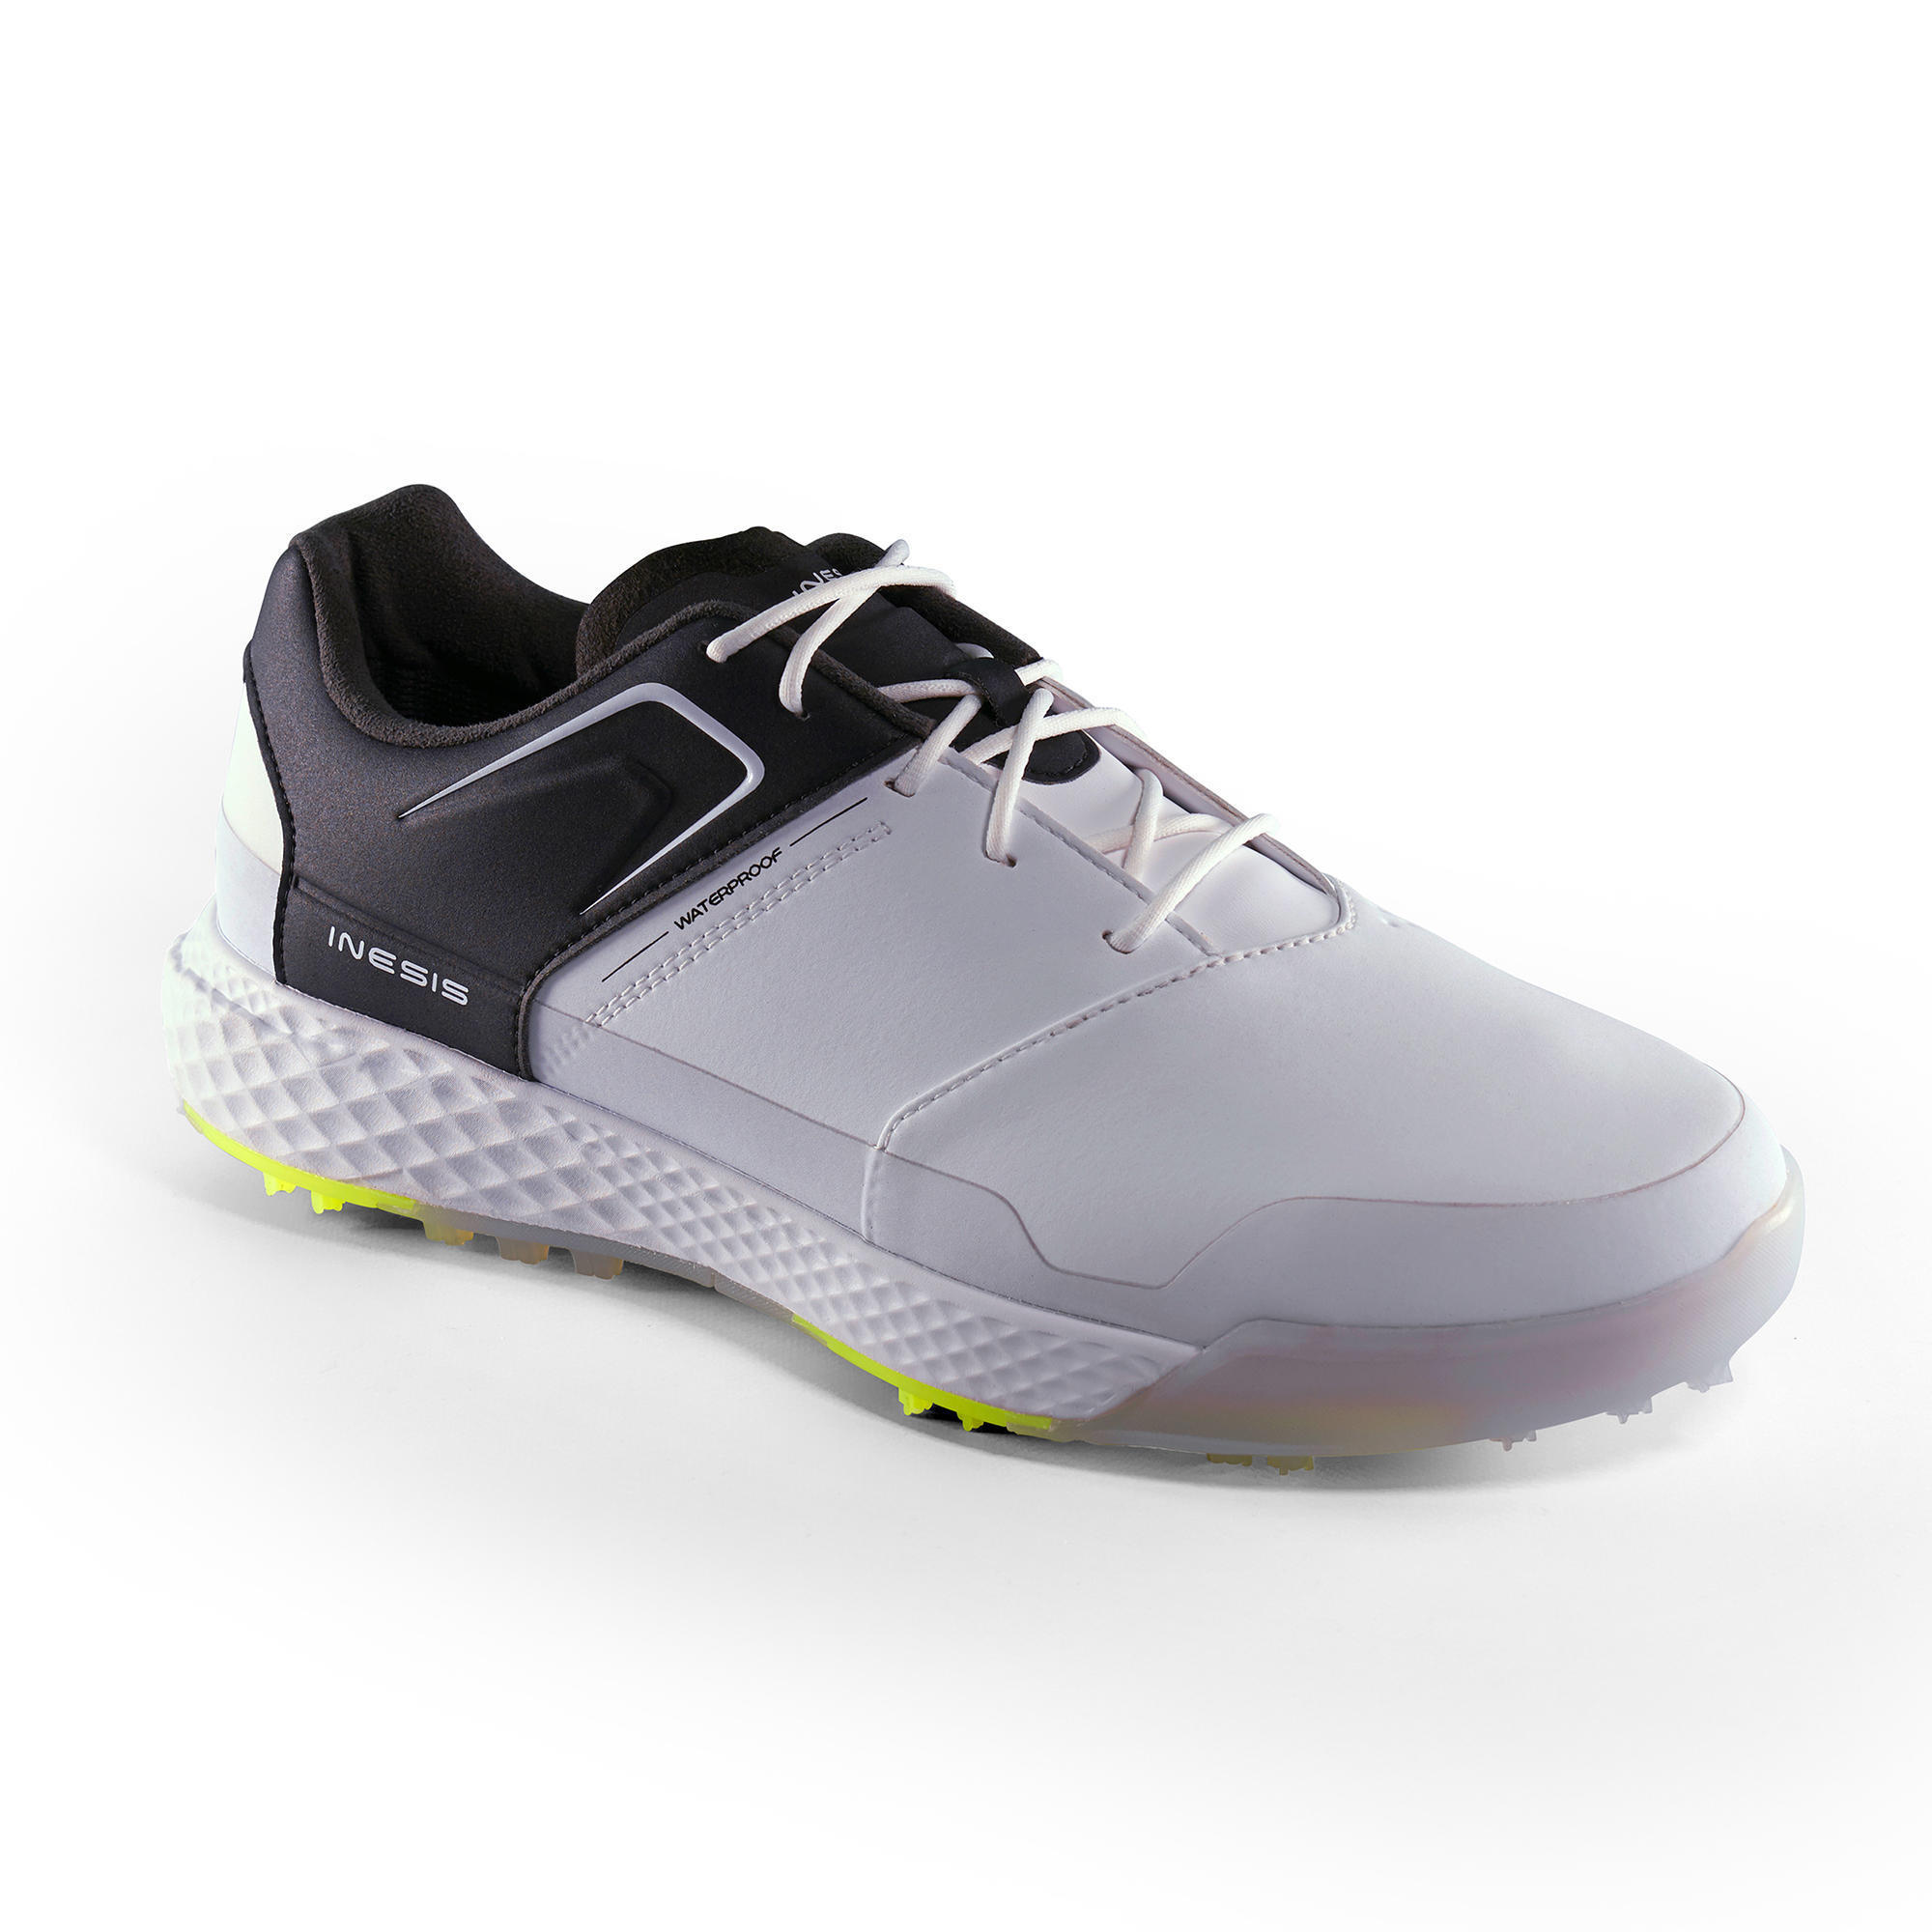 CHAUSSURES GOLF HOMME GRIP WATERPROOF BLANCHES ET NOIRES - Inesis